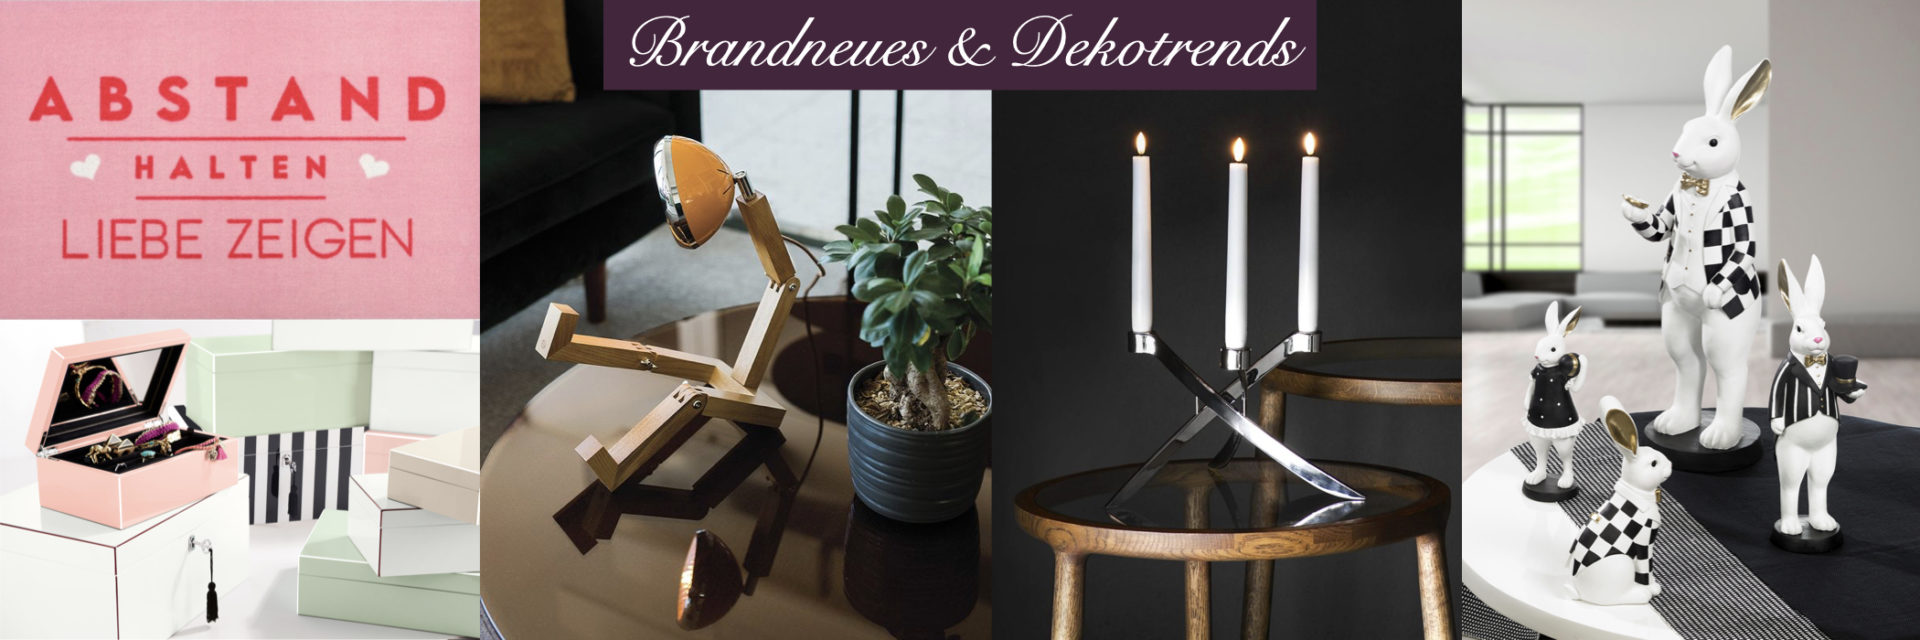 Brandneues & Dekotrends